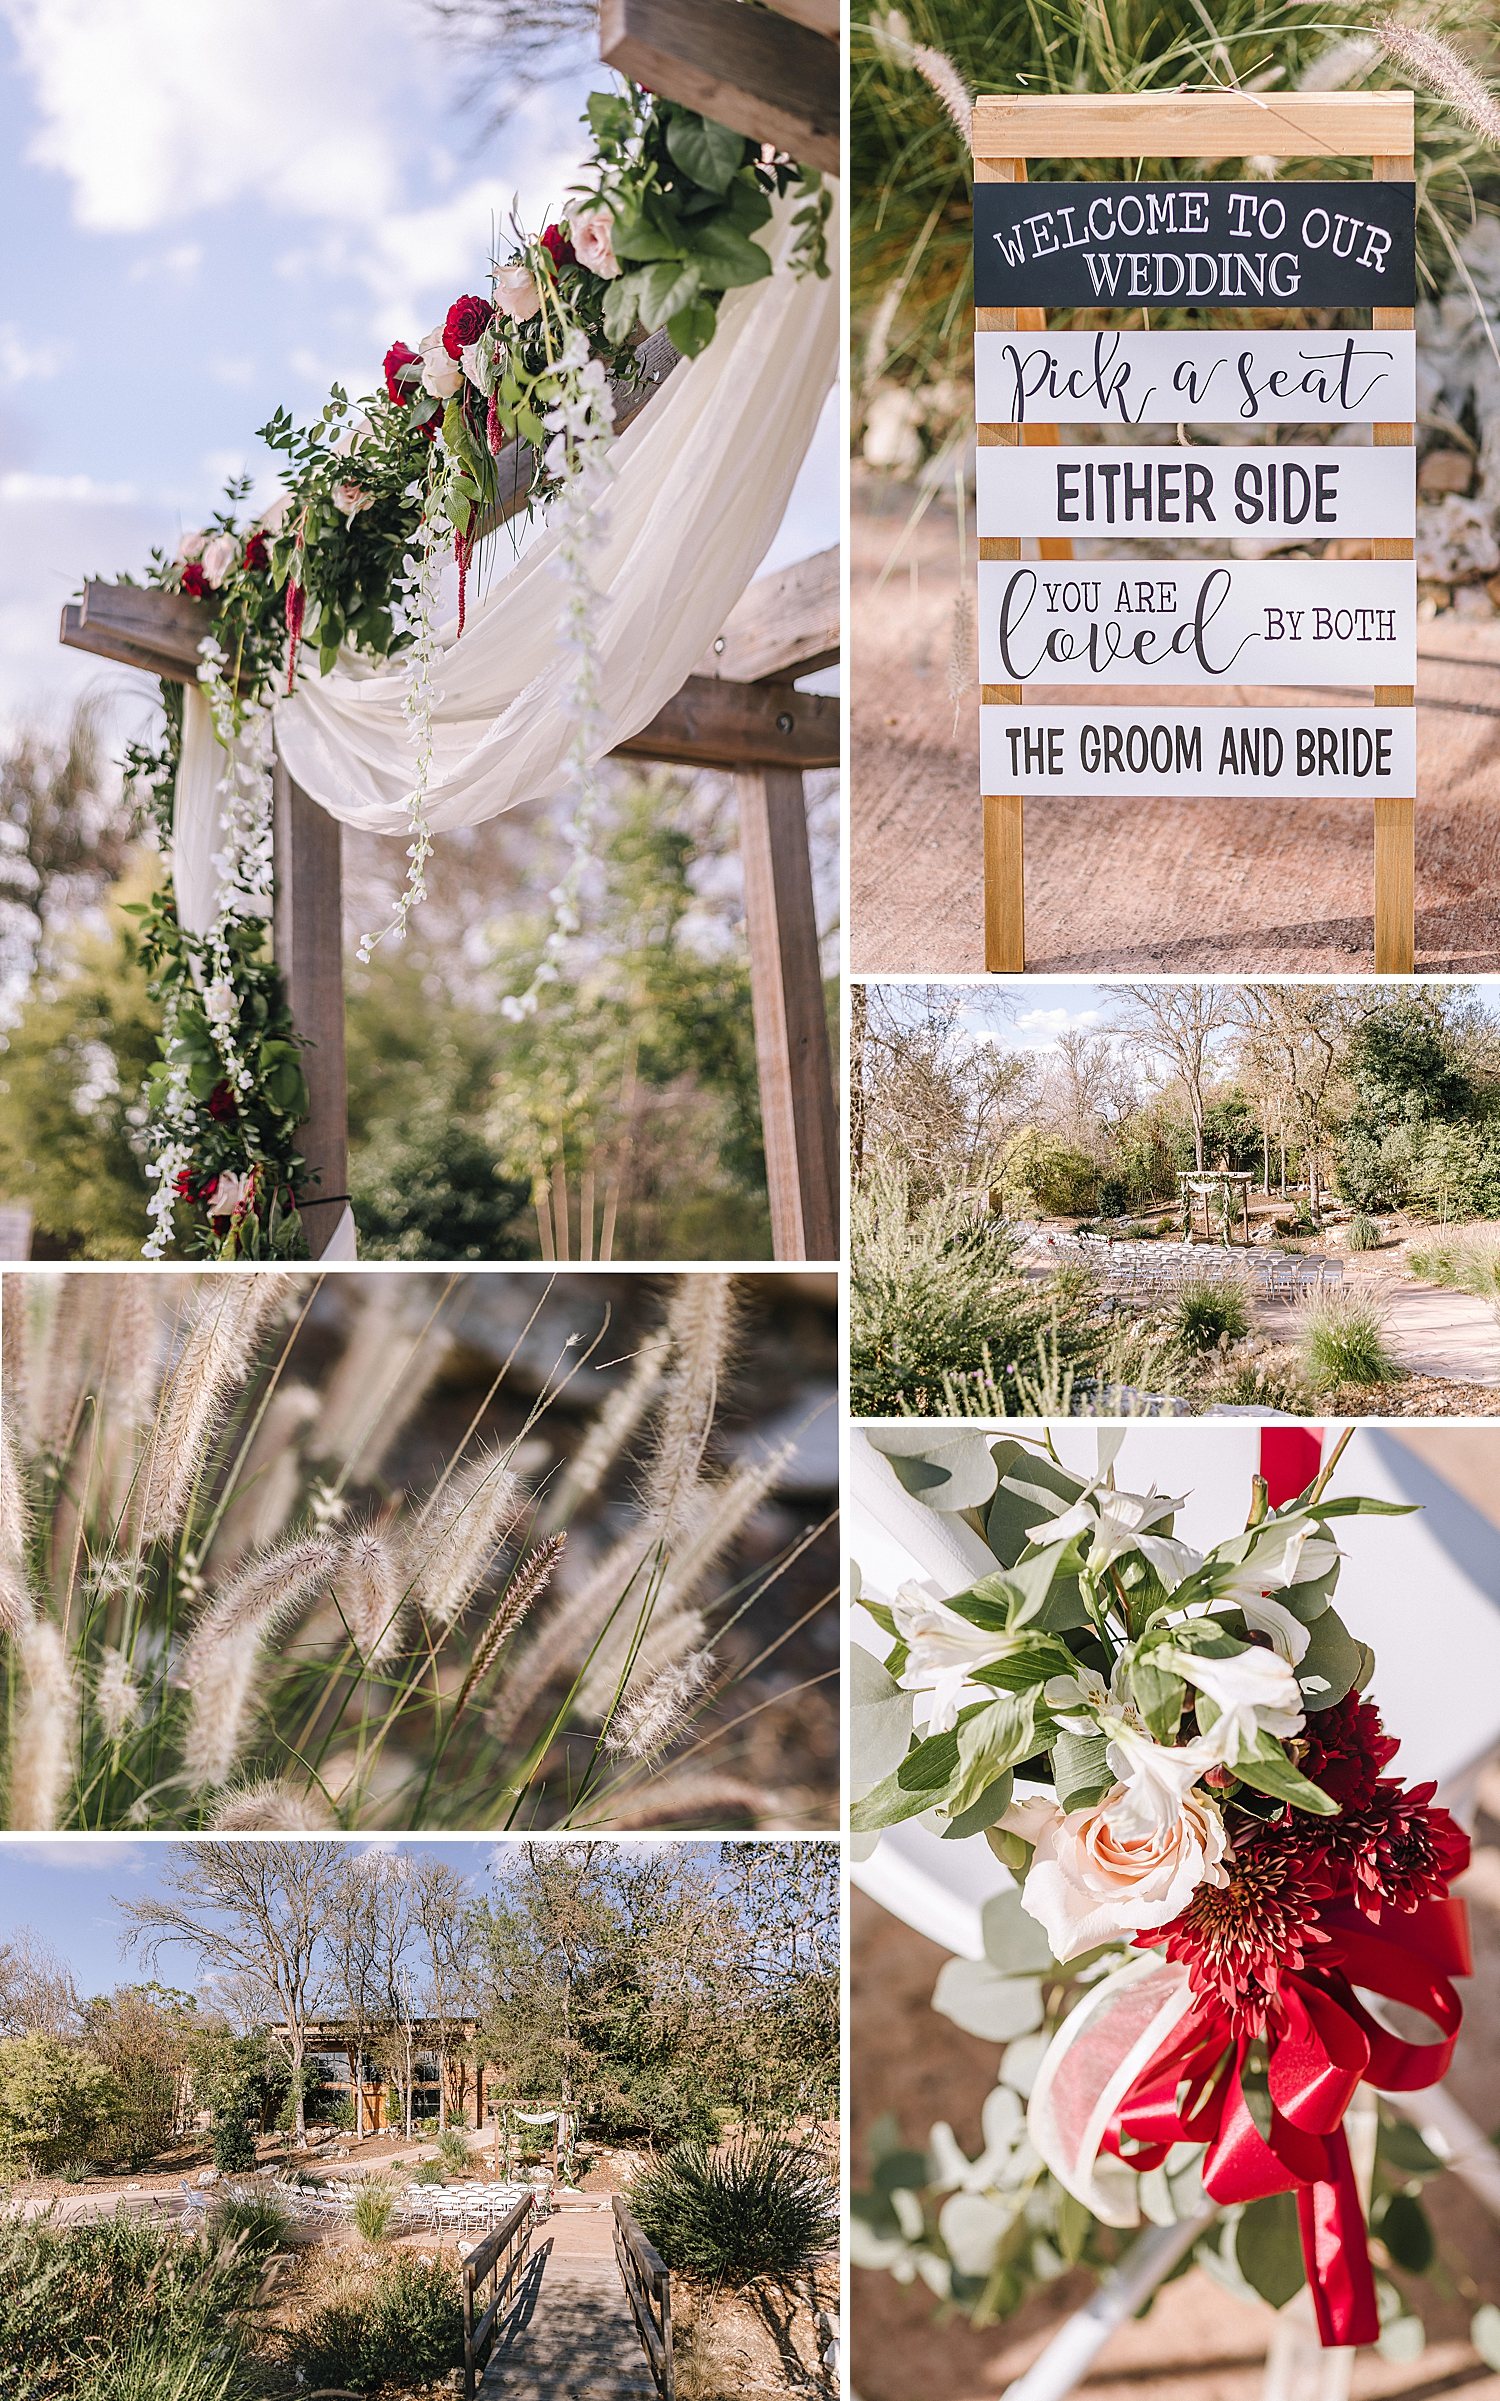 Geronimo-Oaks-Wedding-Venue-Seguin-Texas-Elegant-Navy-Burgundy-Wedding-Carly-Barton-Photography_0002.jpg